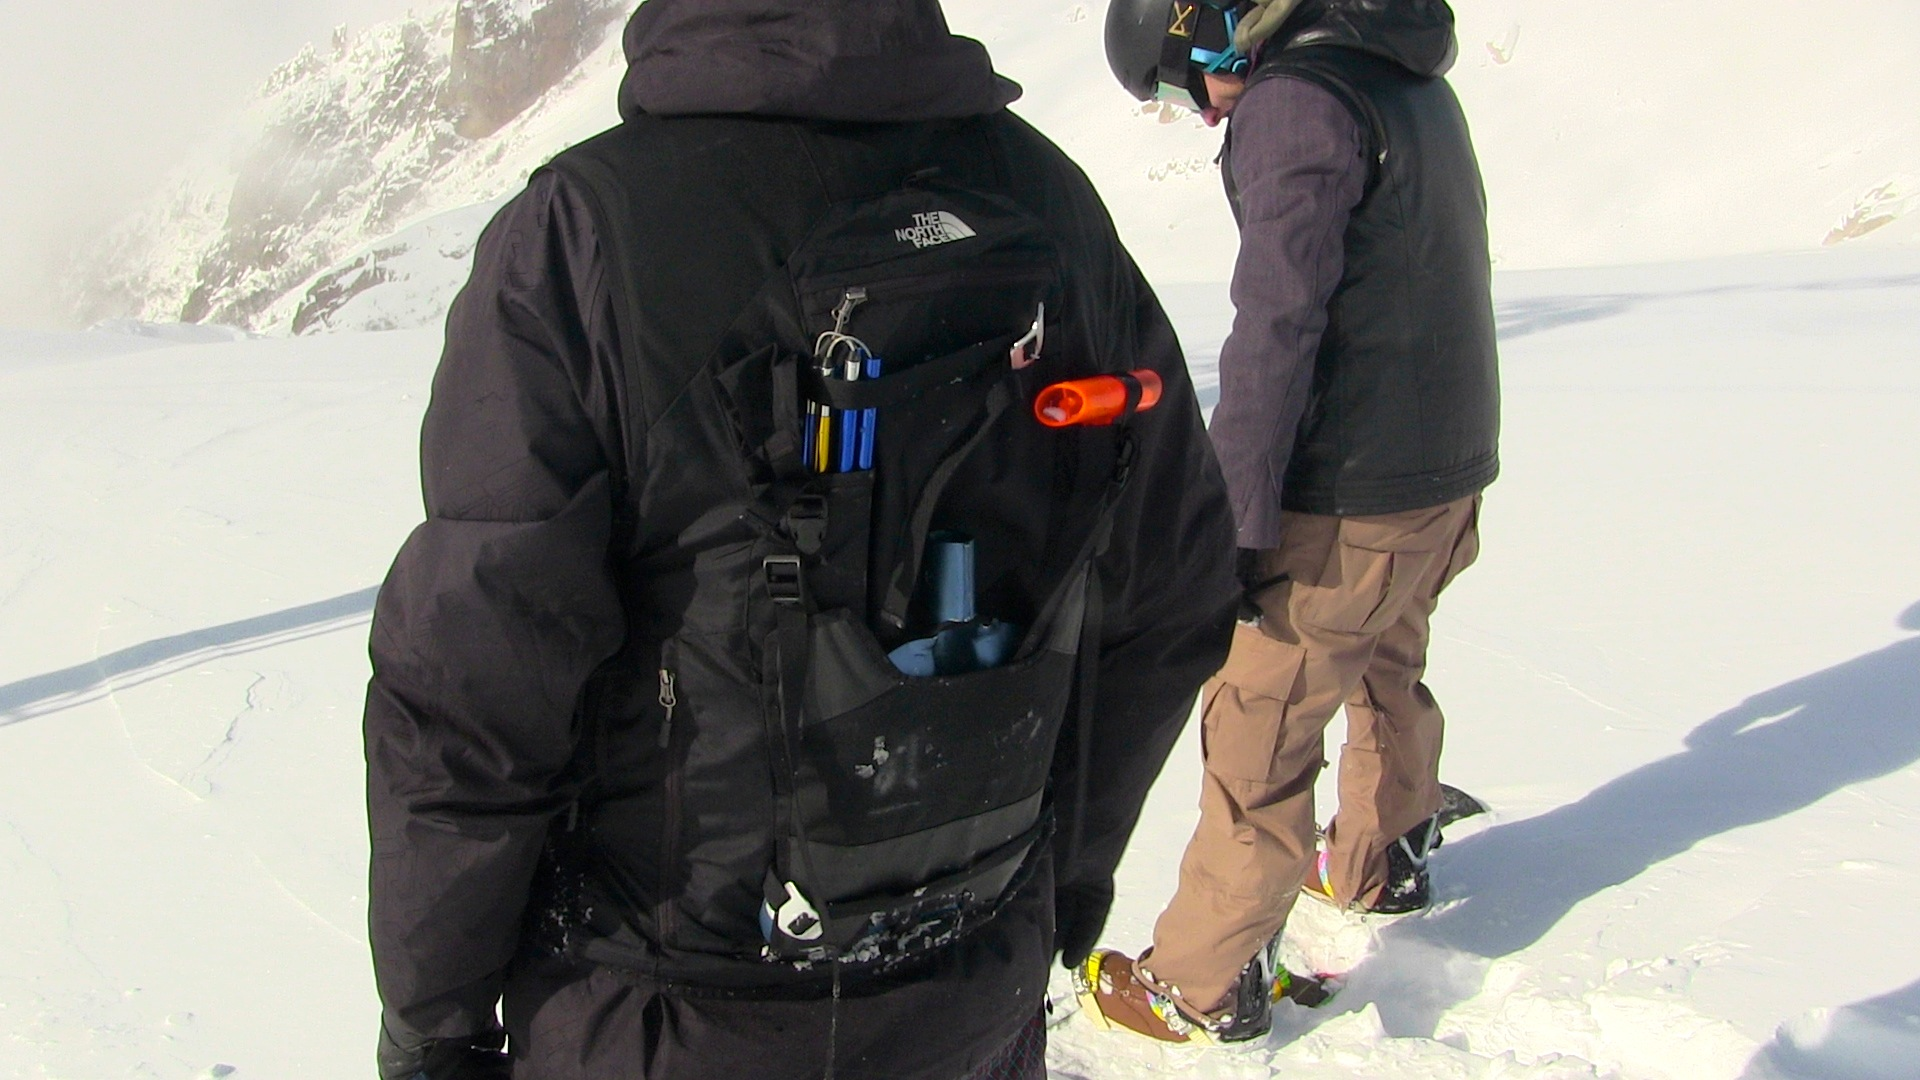 Why Wearing A Vest Instead Of A Backpack In Avalanche